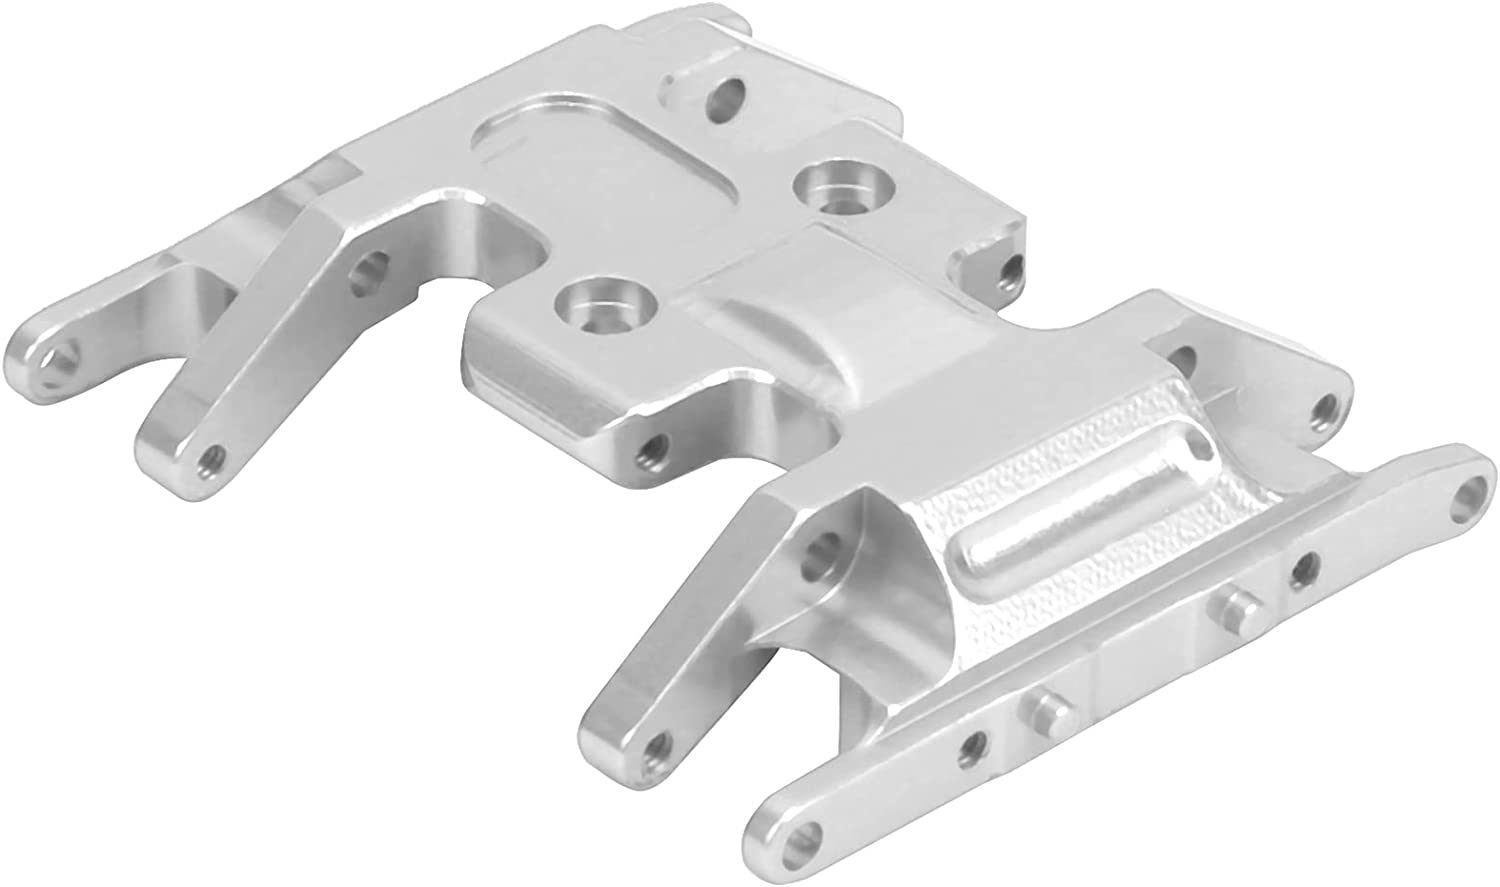 VGEBY RC Gearbox Mount Skid Max 44% OFF Plate Chassis Brand new Aluminum